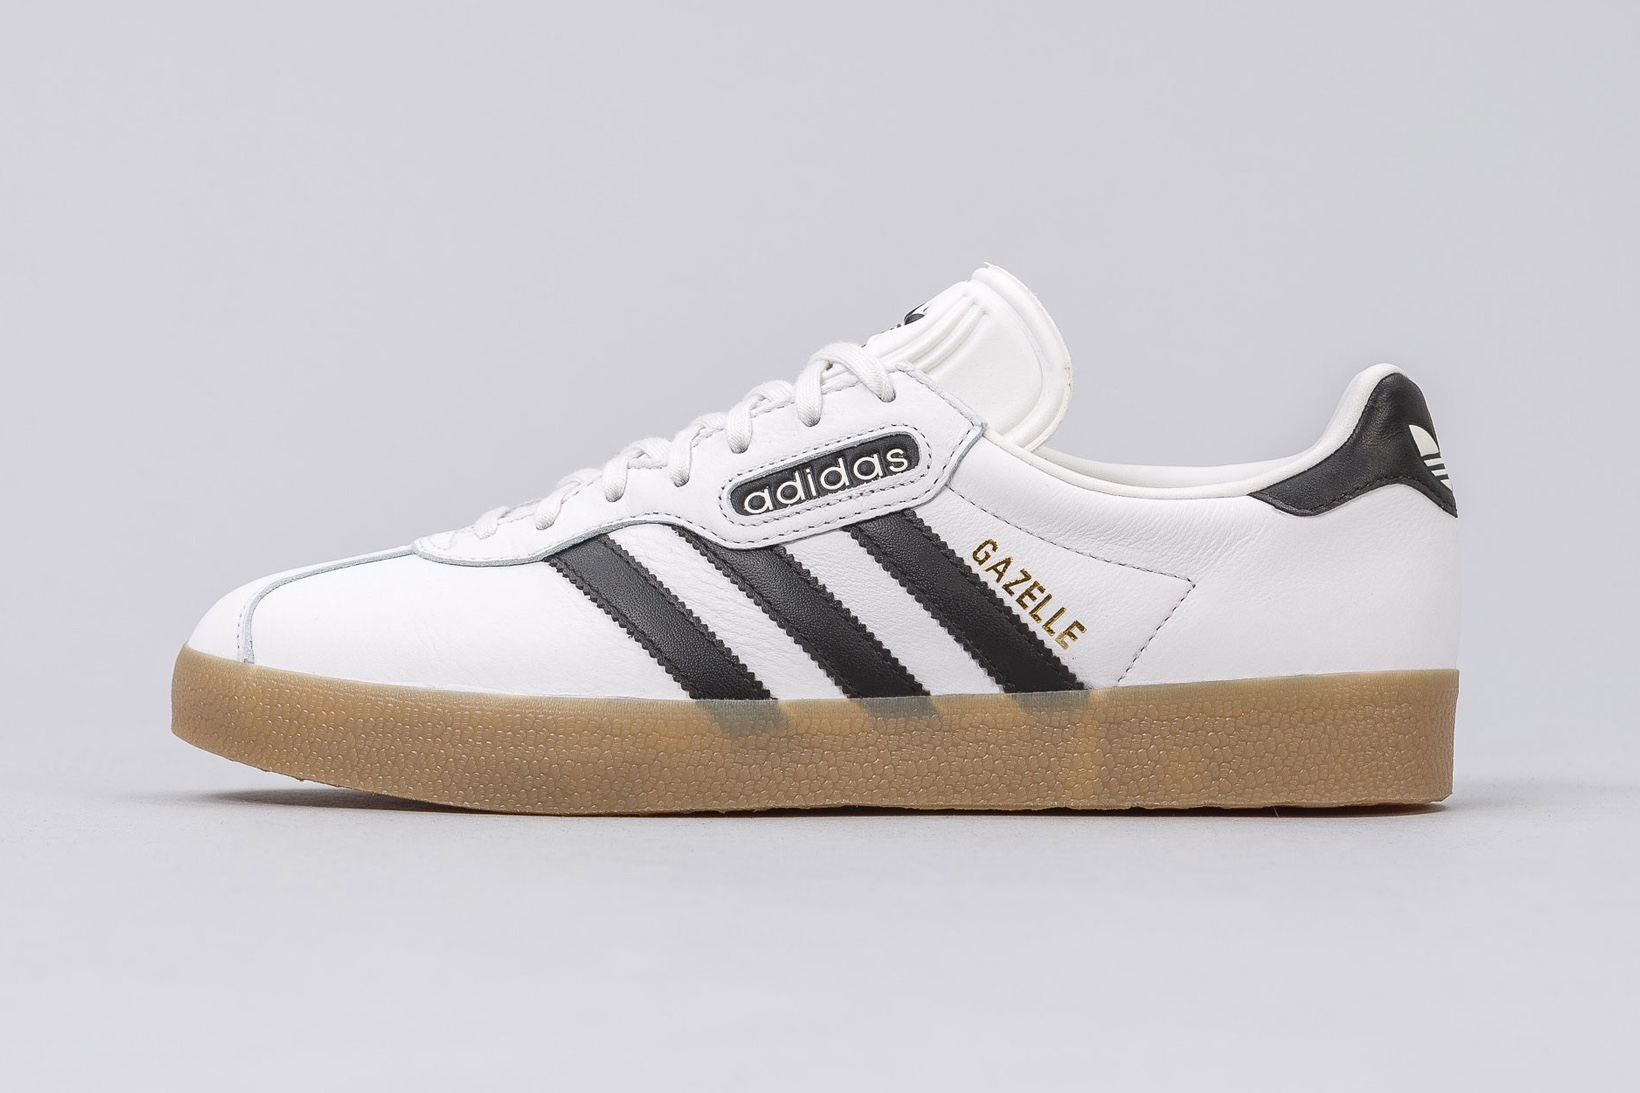 adidas Originals Gazelle Super Vintage White Throwback